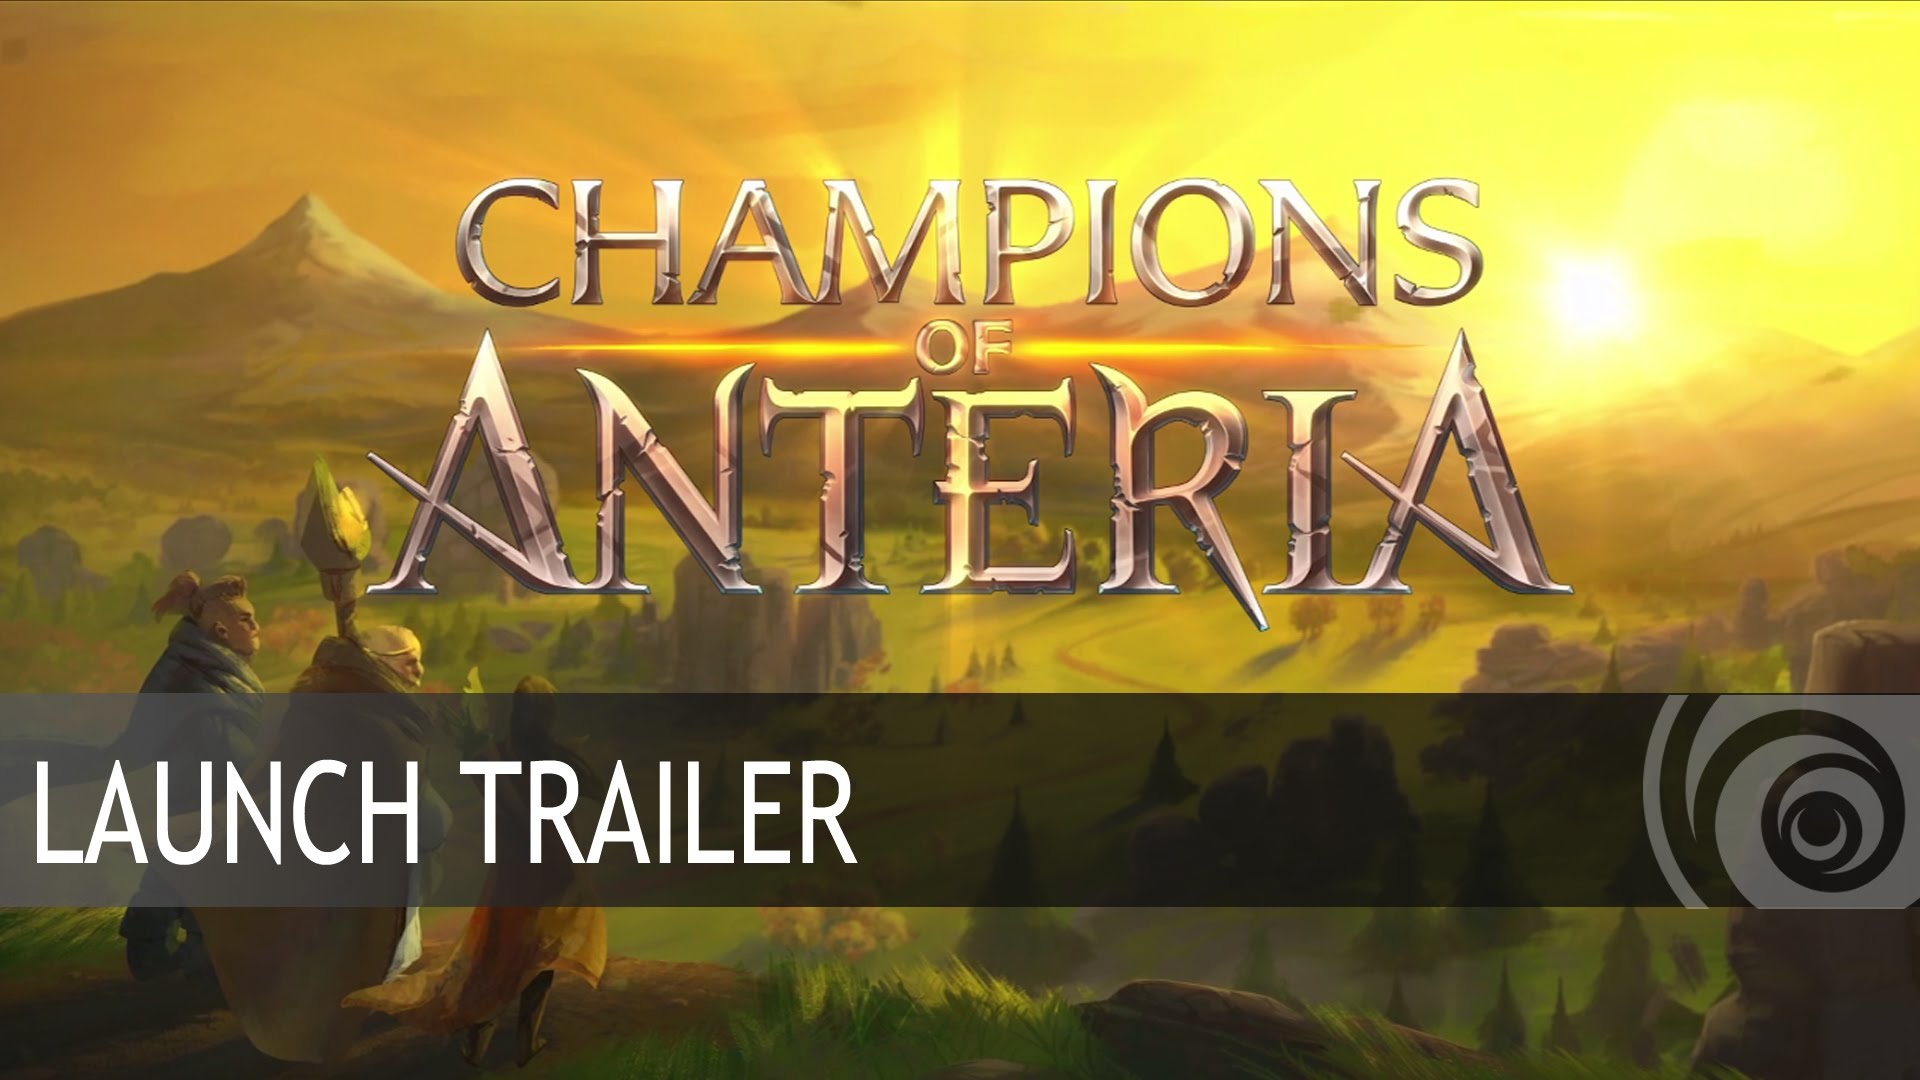 Champions of Anteria: Launch Trailer